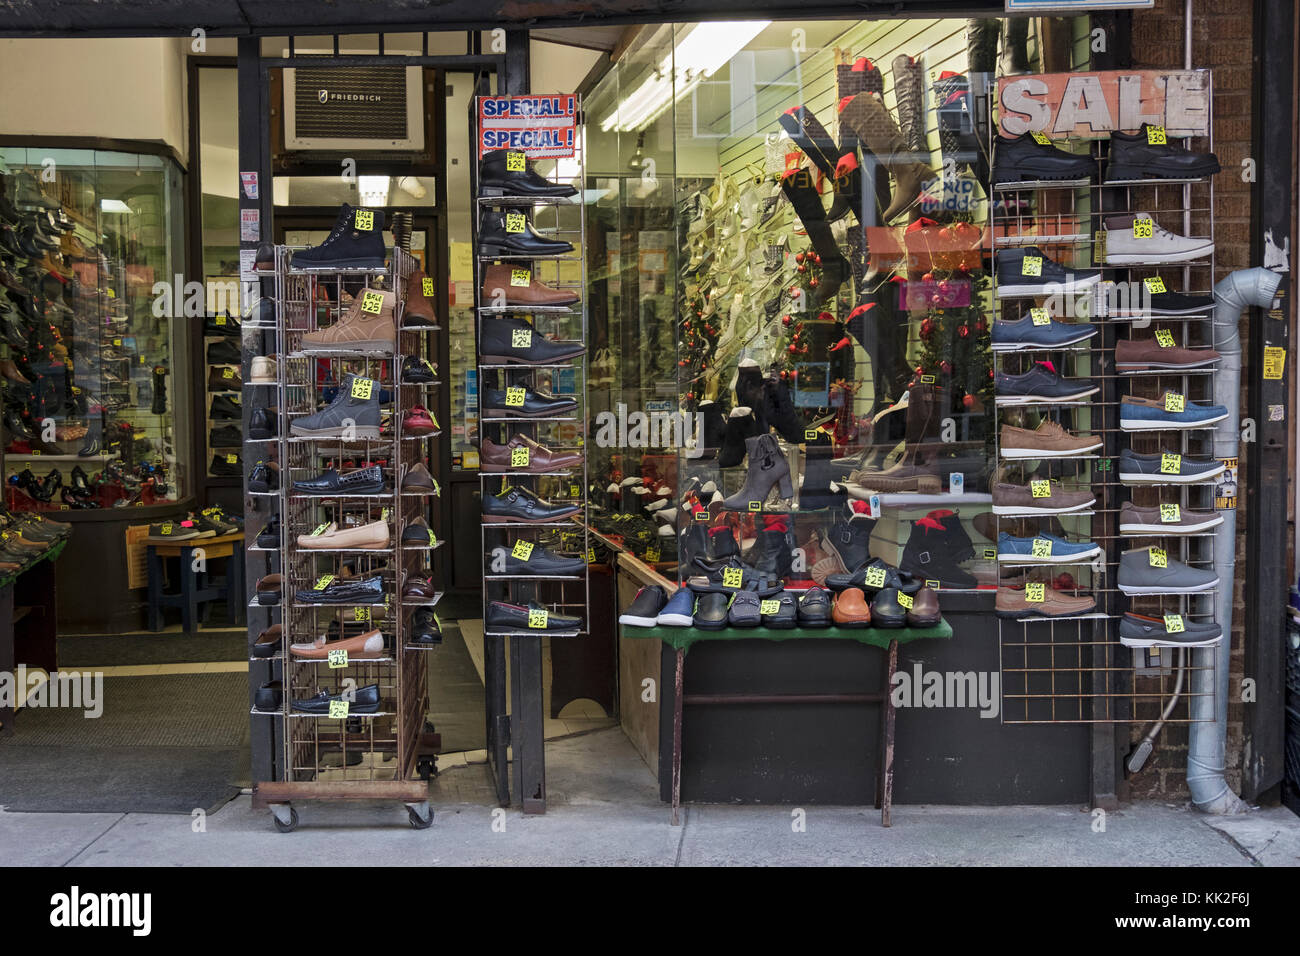 The exterior of Alco Shoes on Liberty avenue in Richmond Hill, Queens, New York with inexpensive shoes on sale. - Stock Image